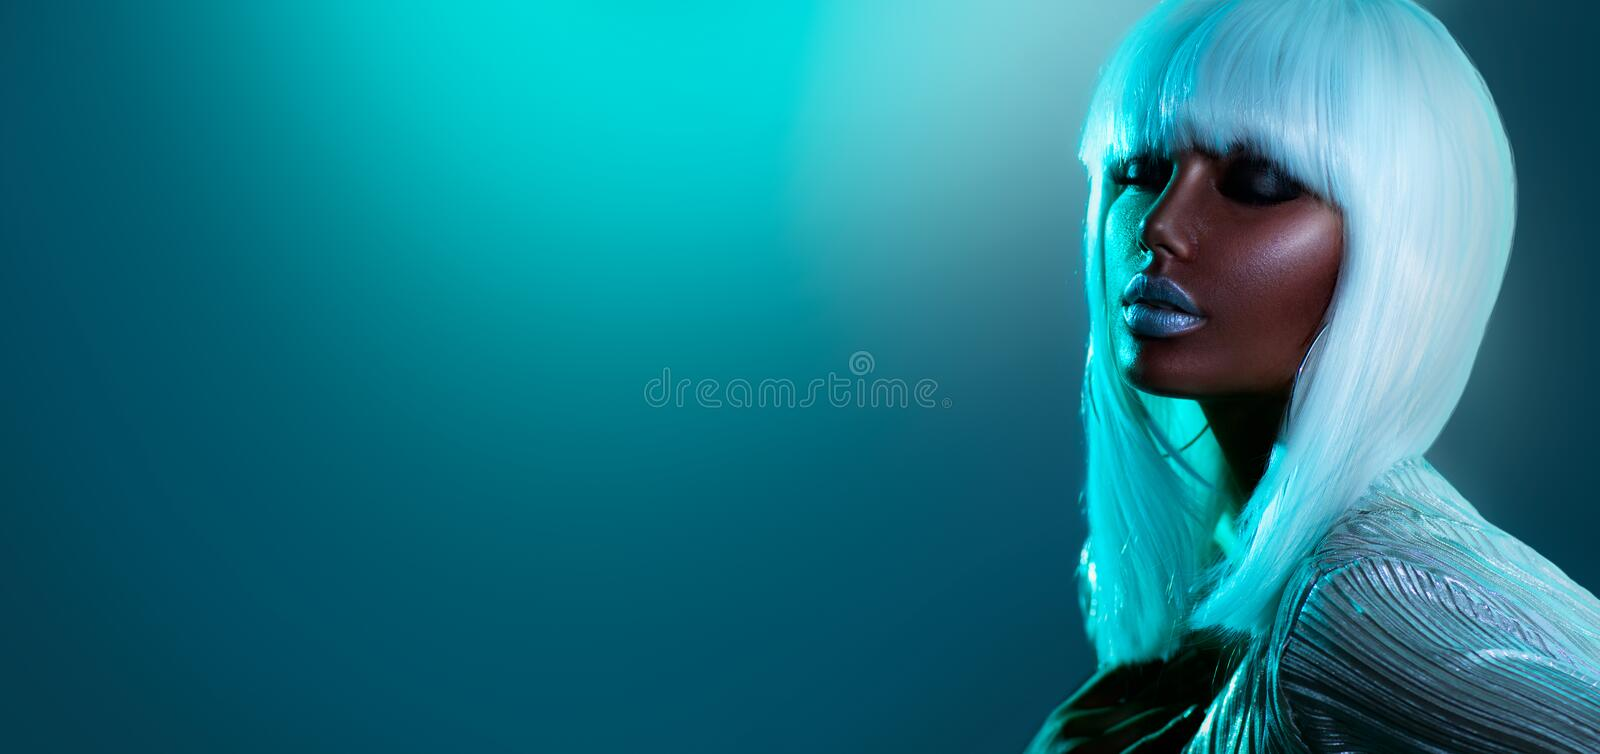 High Fashion model girl in colorful bright neon lights posing in studio, portrait of beautiful African American woman in white hai stock photo